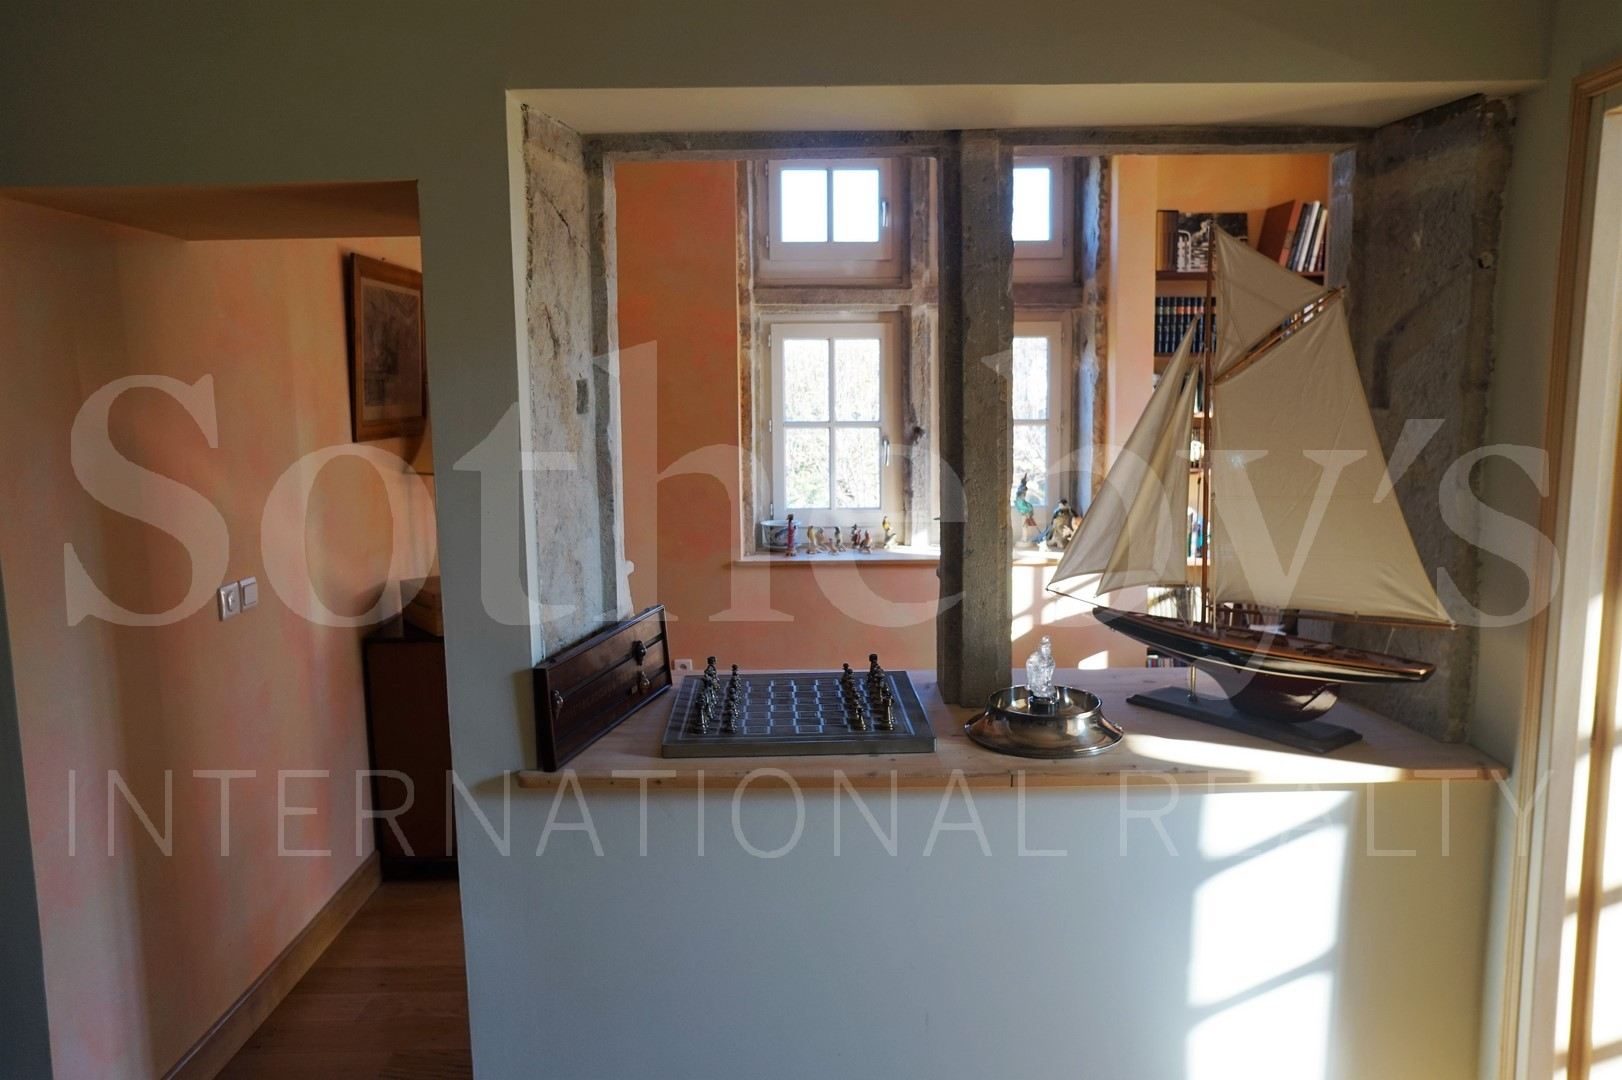 Apartment for Sale at ST-CYR-AU-MONT-D'OR Other Rhone-Alpes, Rhone-Alpes, 69450 France